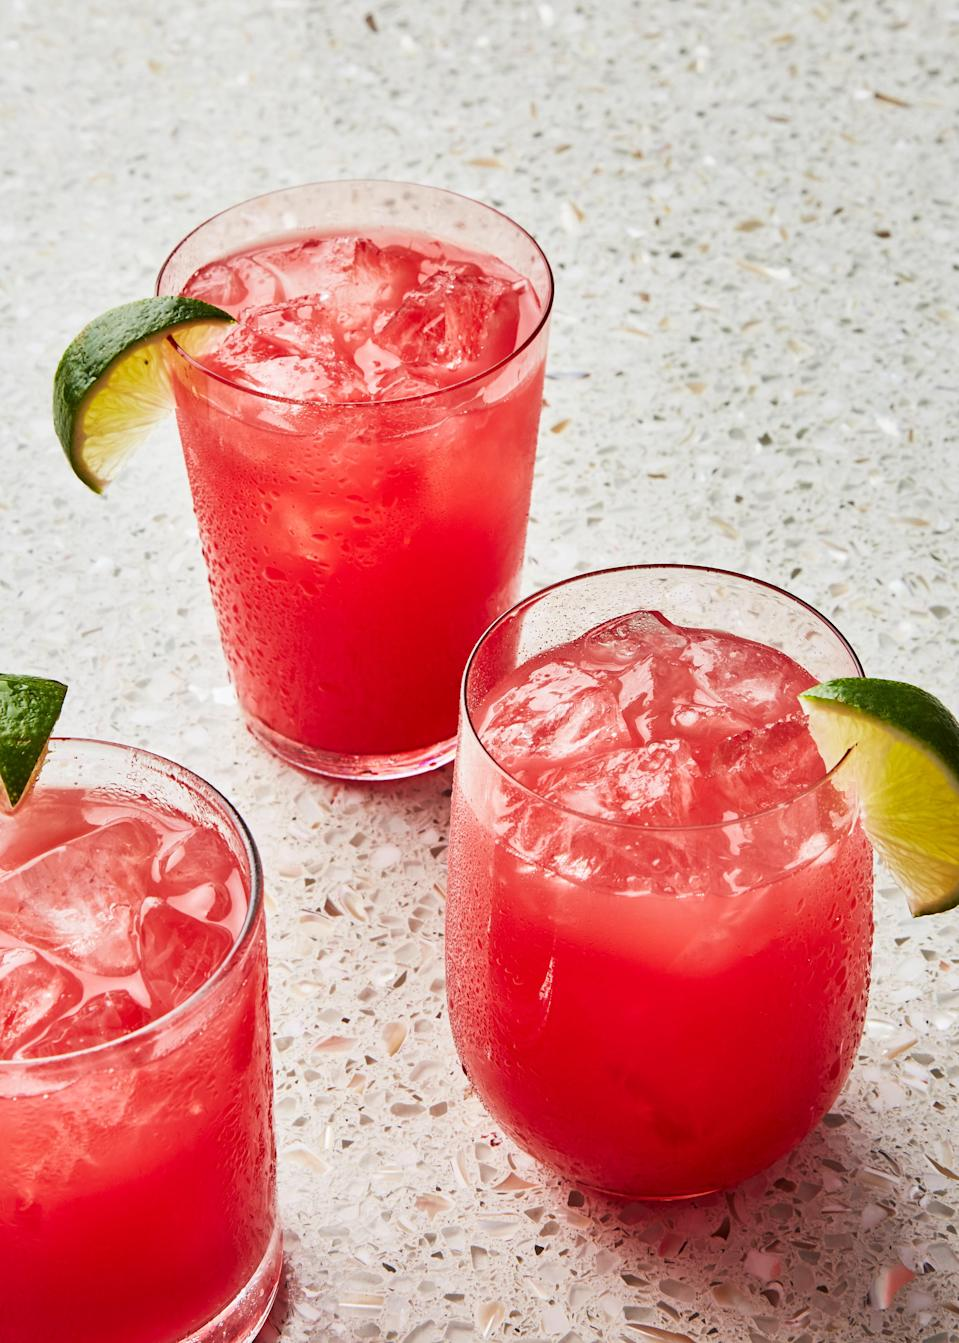 "This recipe is a genius way to use up the second half of that <em>enormous</em> summer watermelon you've been snacking on. There is truly nothing more refreshing than a cold glass of salted watermelon juice. Oh wait, but what about a salted watermelon margarita? <a href=""https://www.bonappetit.com/recipe/salted-watermelon-margarita?mbid=synd_yahoo_rss"" rel=""nofollow noopener"" target=""_blank"" data-ylk=""slk:Here's a recipe for that too."" class=""link rapid-noclick-resp"">Here's a recipe for that too.</a> This recipe is part of the Healthyish Farmers' Market Challenge. Get all 10 recipes <a href=""https://www.bonappetit.com/farmersmarketchallenge?mbid=synd_yahoo_rss"" rel=""nofollow noopener"" target=""_blank"" data-ylk=""slk:here"" class=""link rapid-noclick-resp"">here</a>. <a href=""https://www.bonappetit.com/recipe/salted-watermelon-juice?mbid=synd_yahoo_rss"" rel=""nofollow noopener"" target=""_blank"" data-ylk=""slk:See recipe."" class=""link rapid-noclick-resp"">See recipe.</a>"